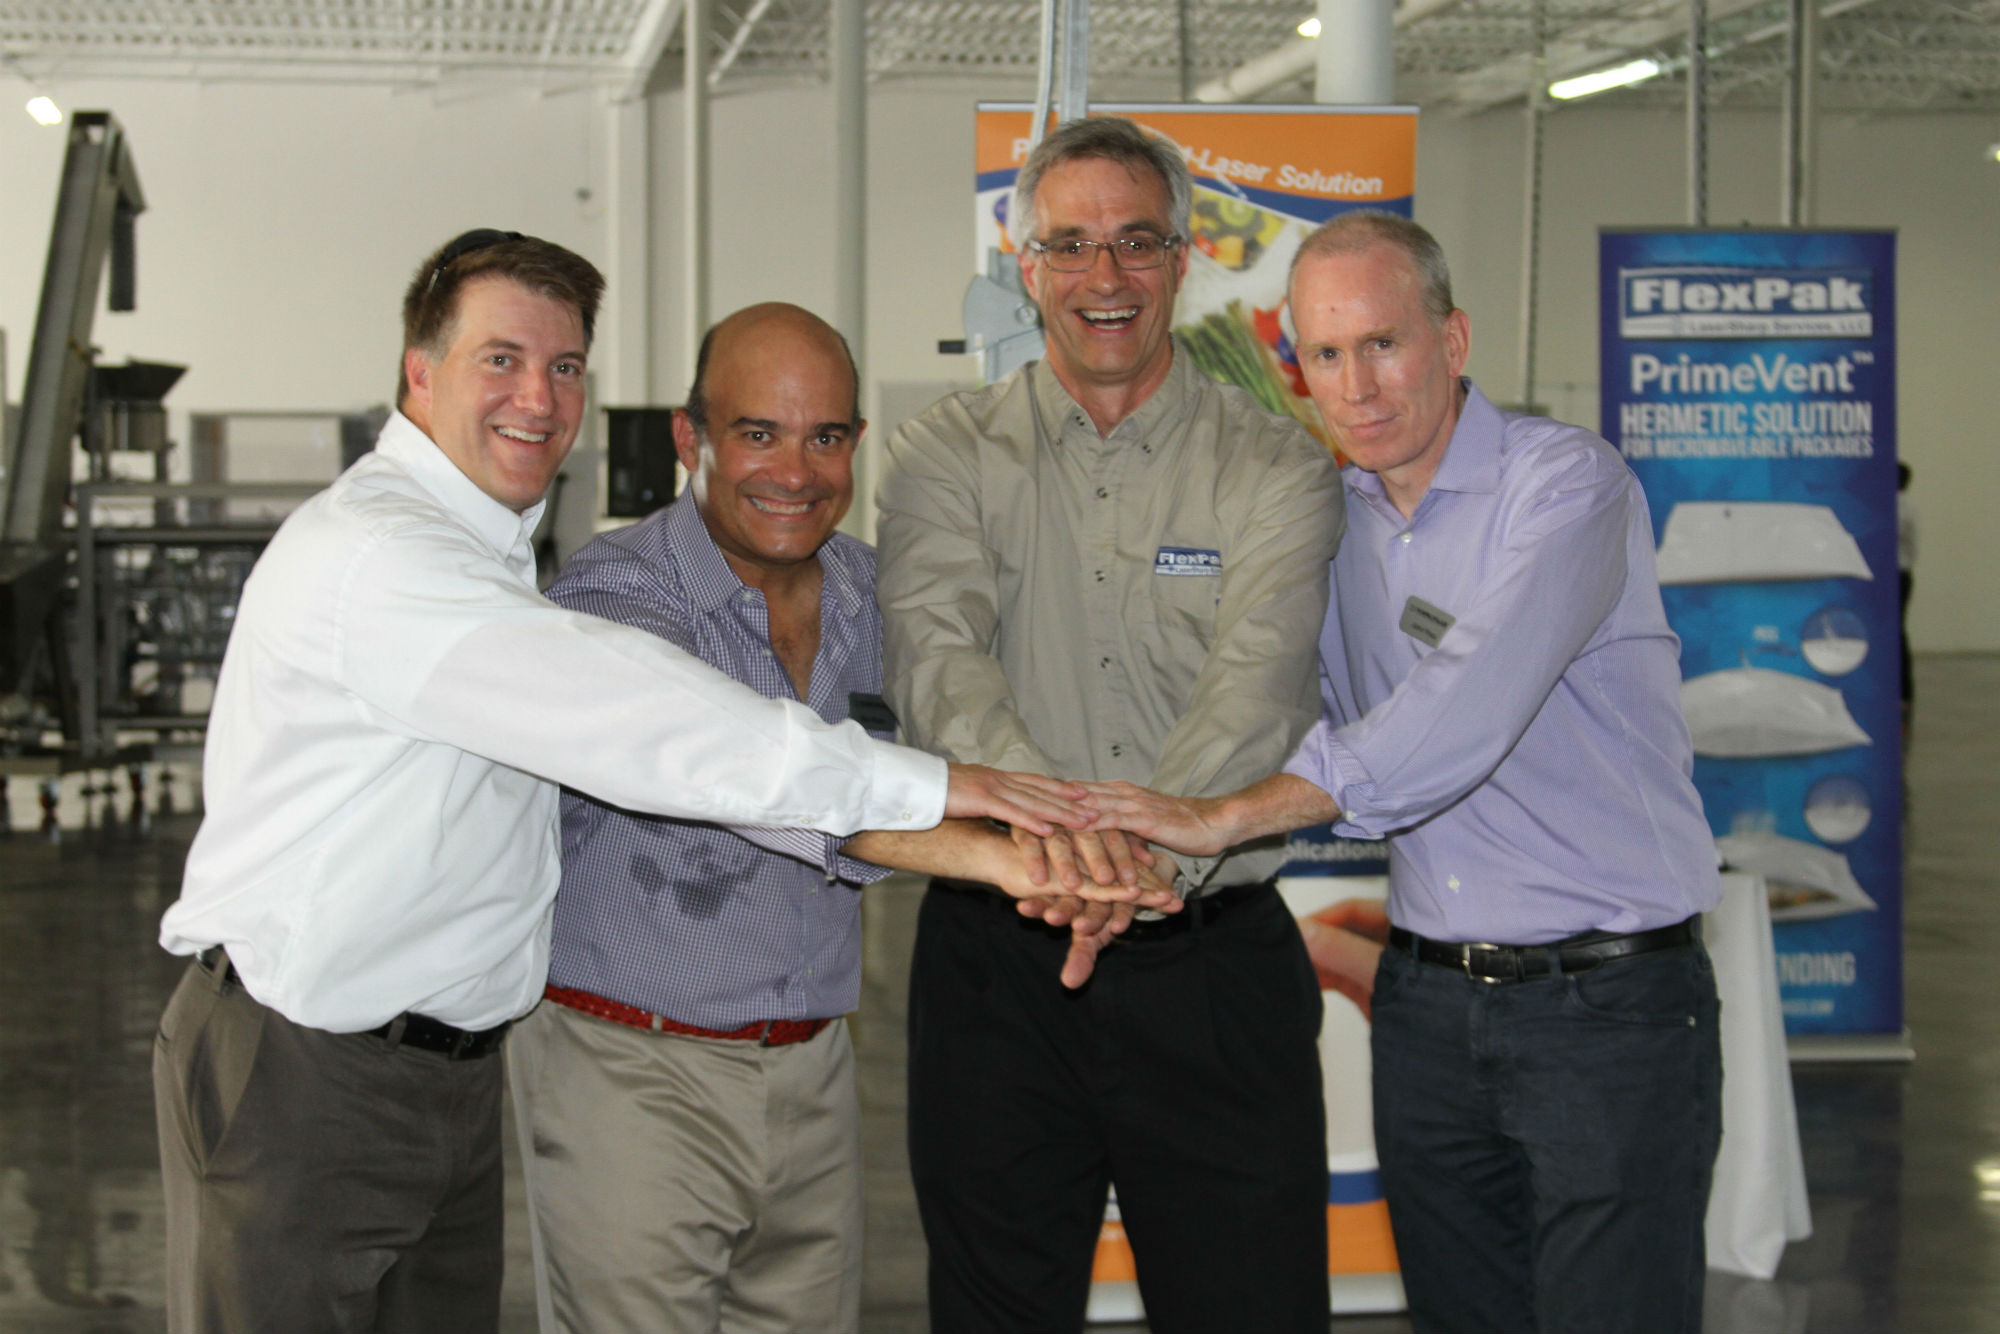 karlville and flexpak laser partnership